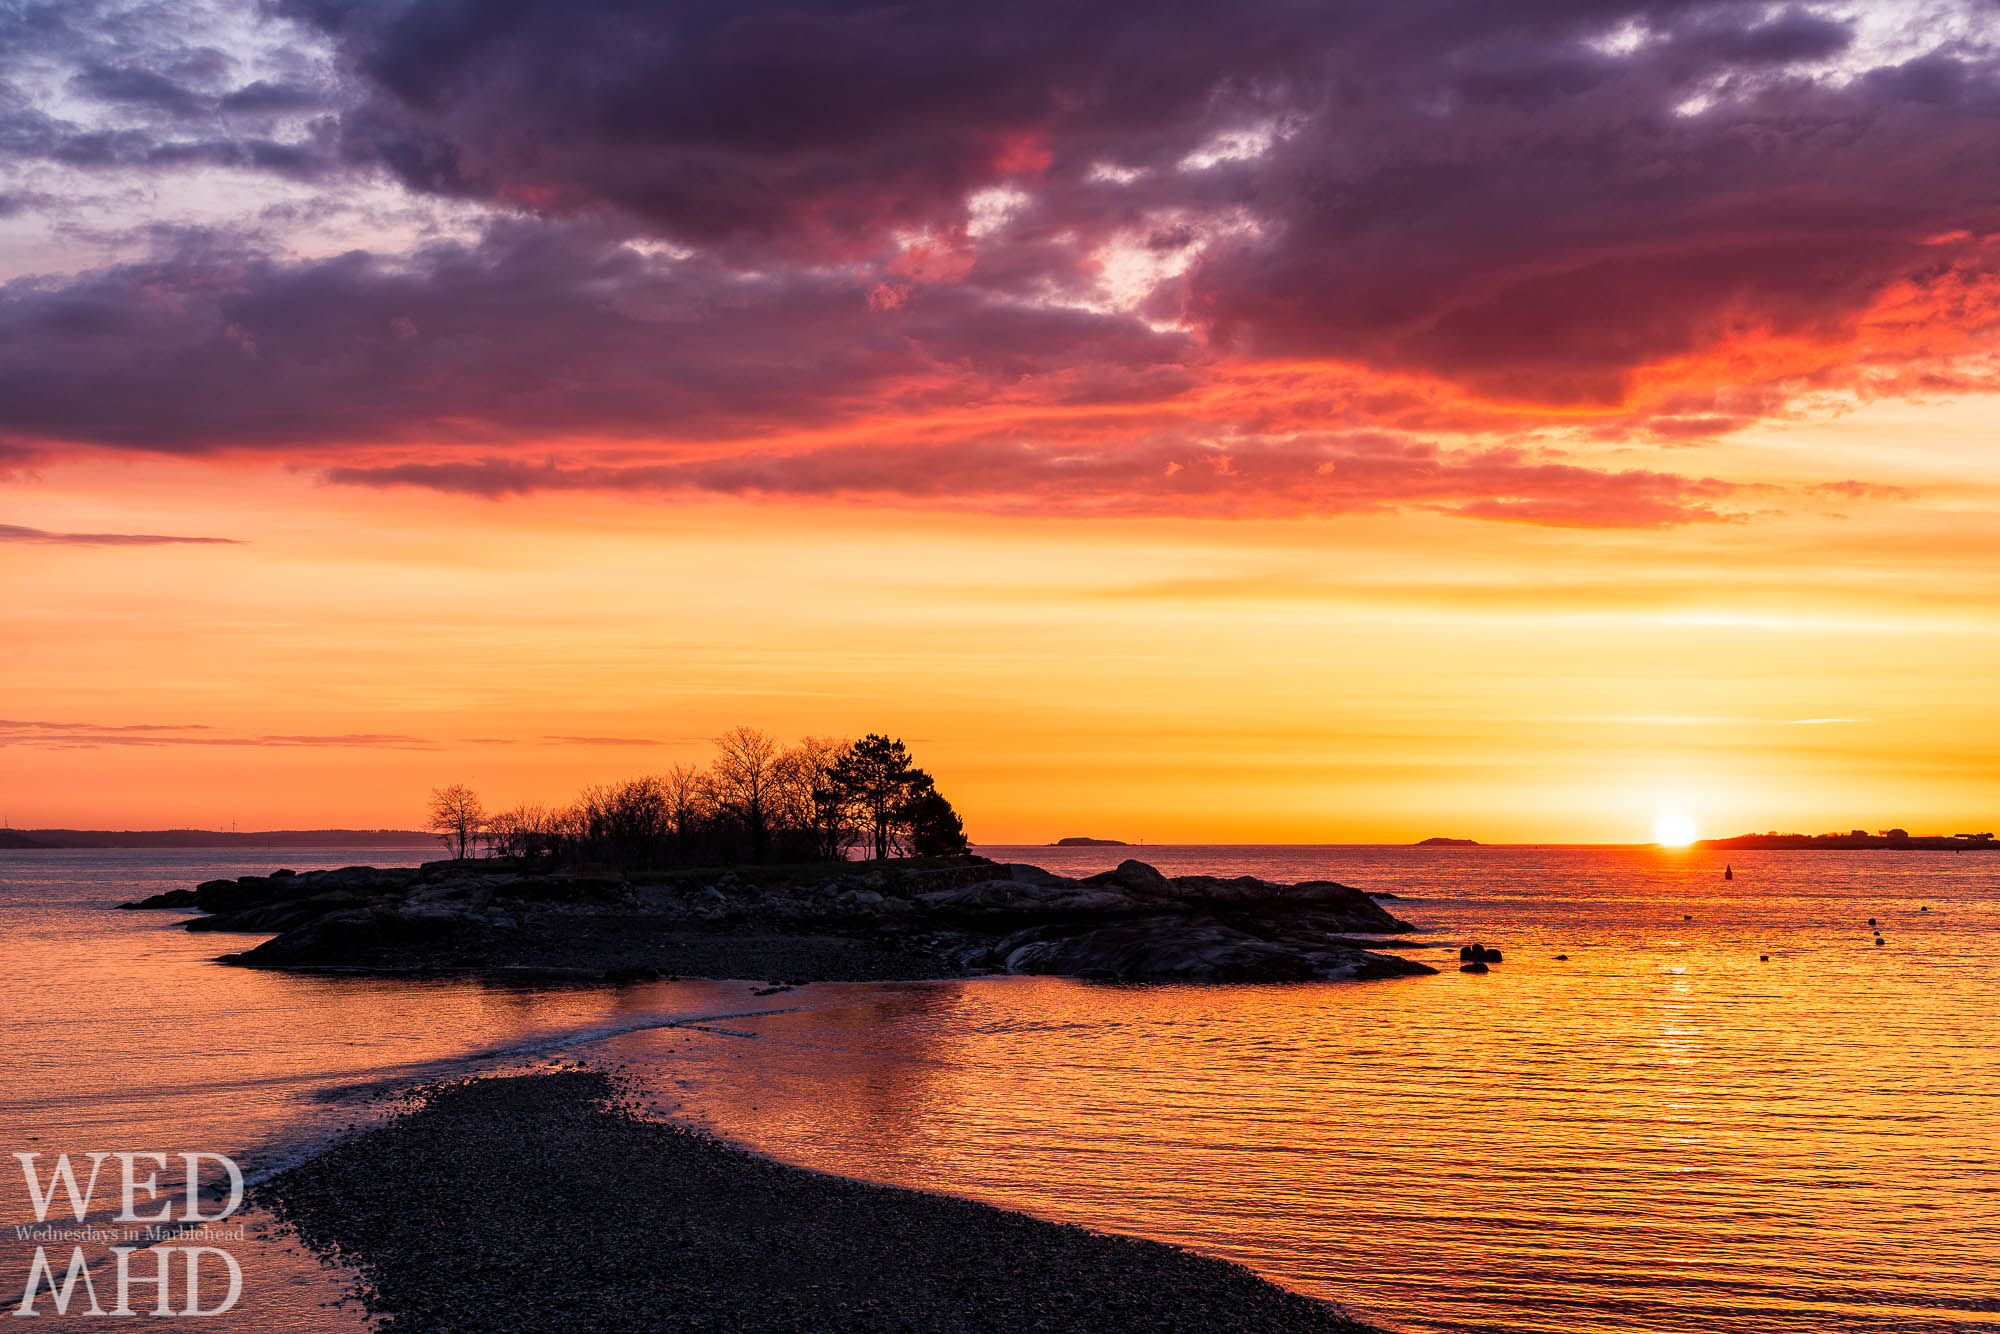 A mid-April sunrise over Gerry Island colors the sky in orange and pink which reflects in the calm water